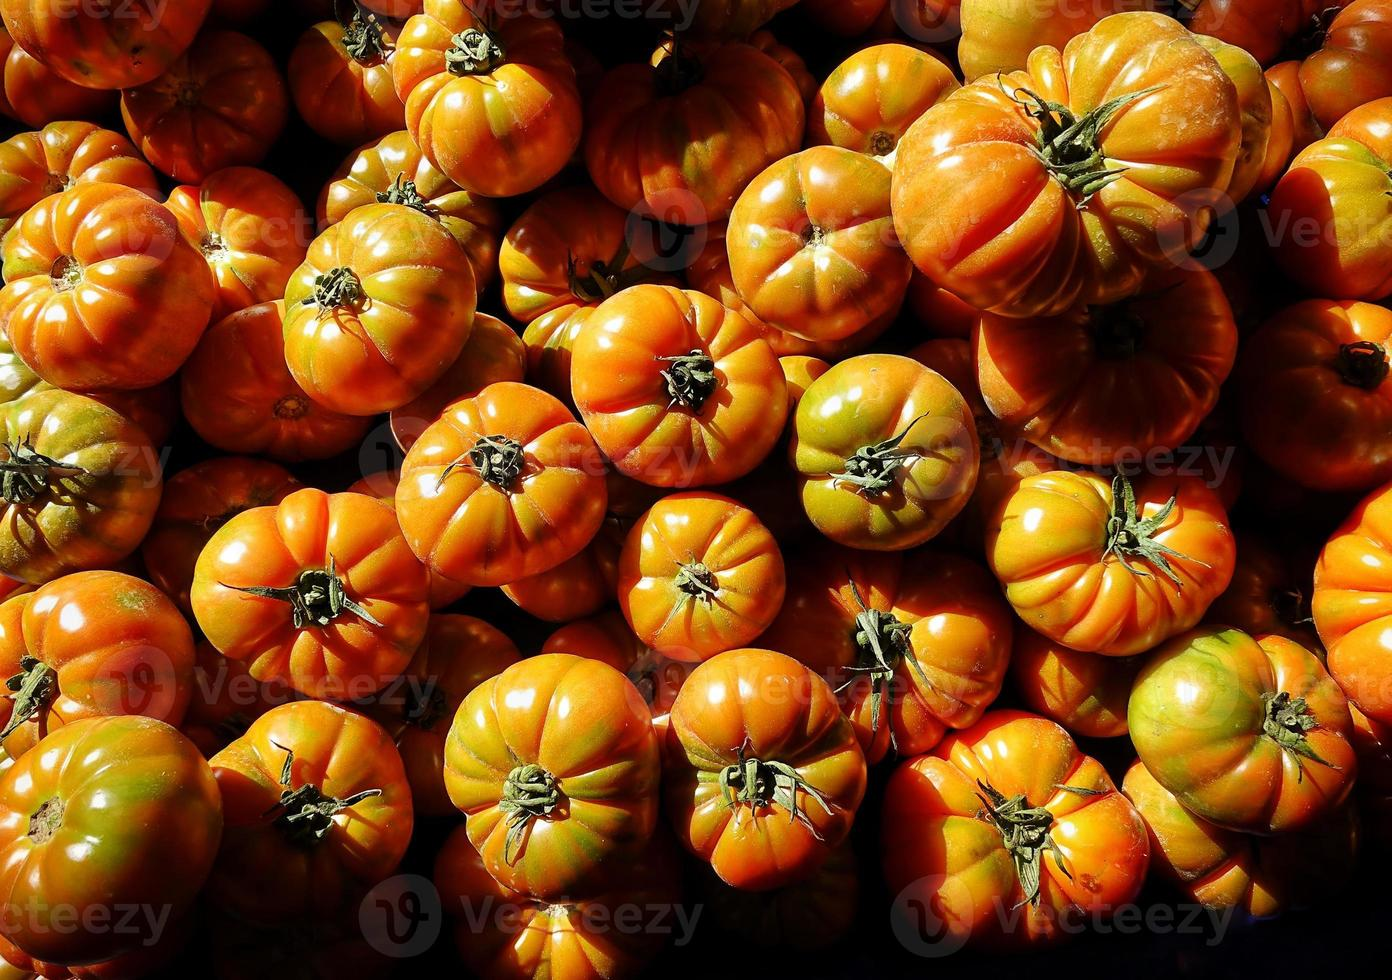 Healthy and Juicy Vegetable Tomato photo